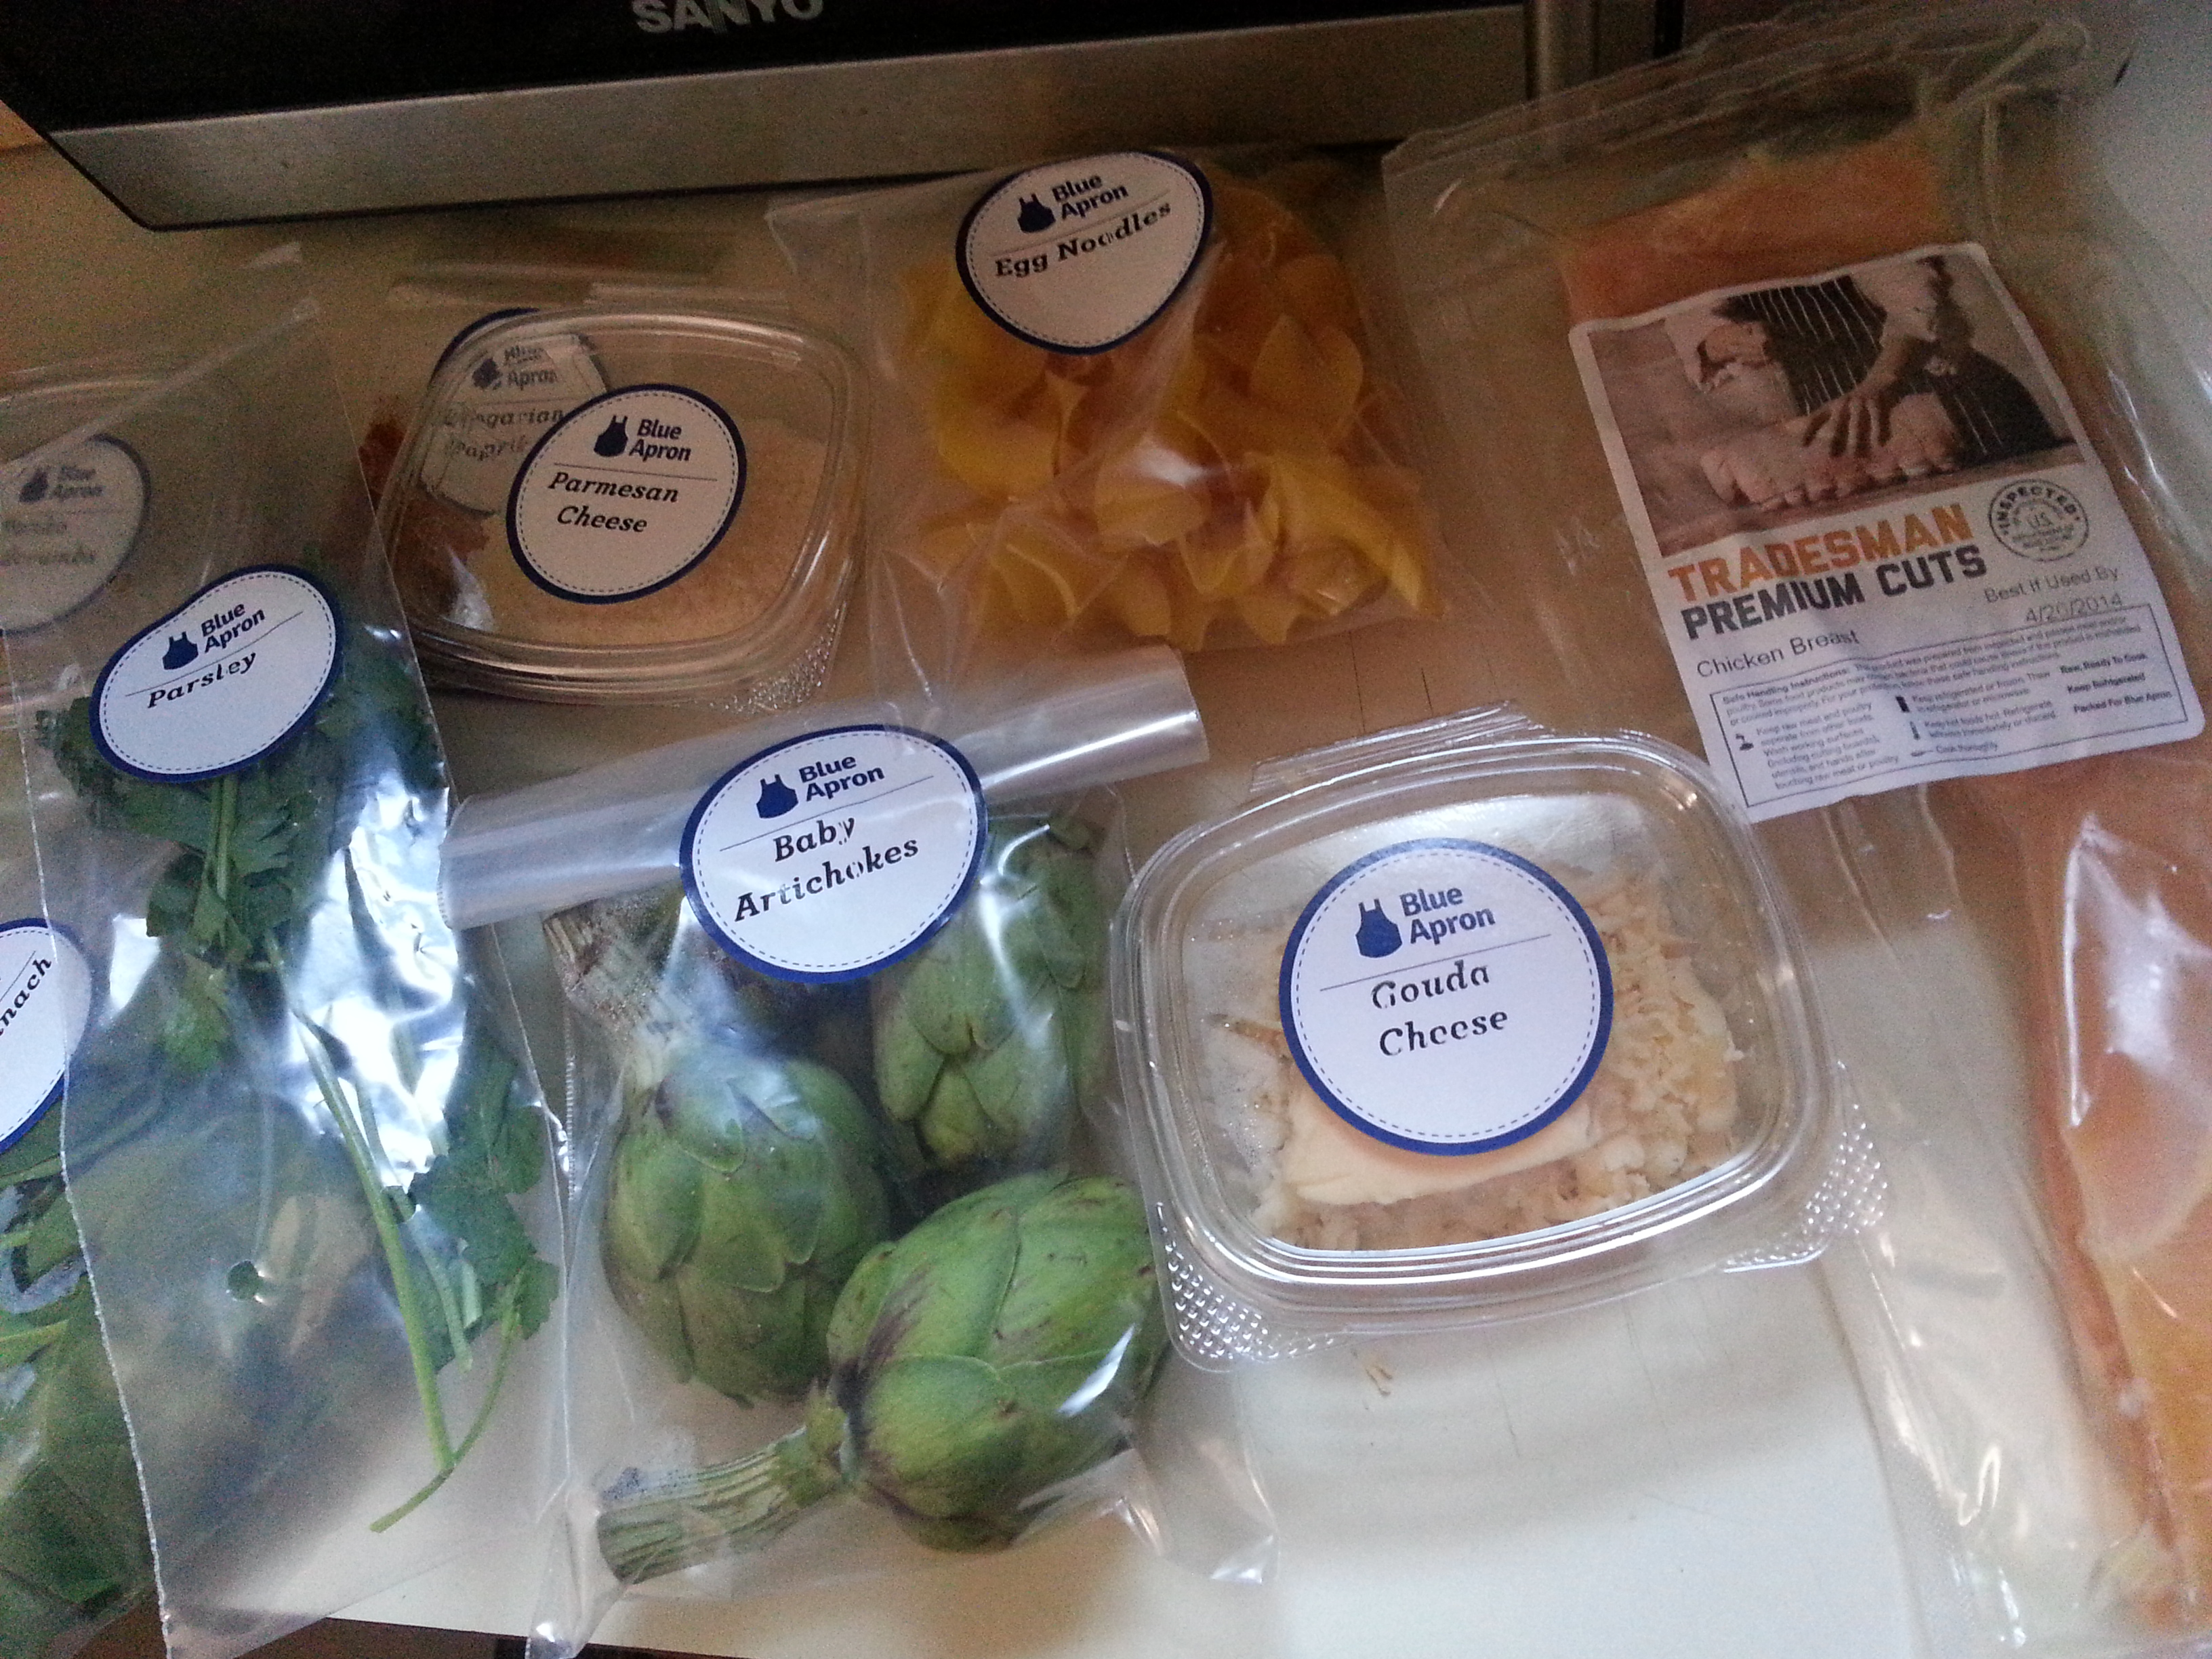 Blue apron experience - 20140409_130923